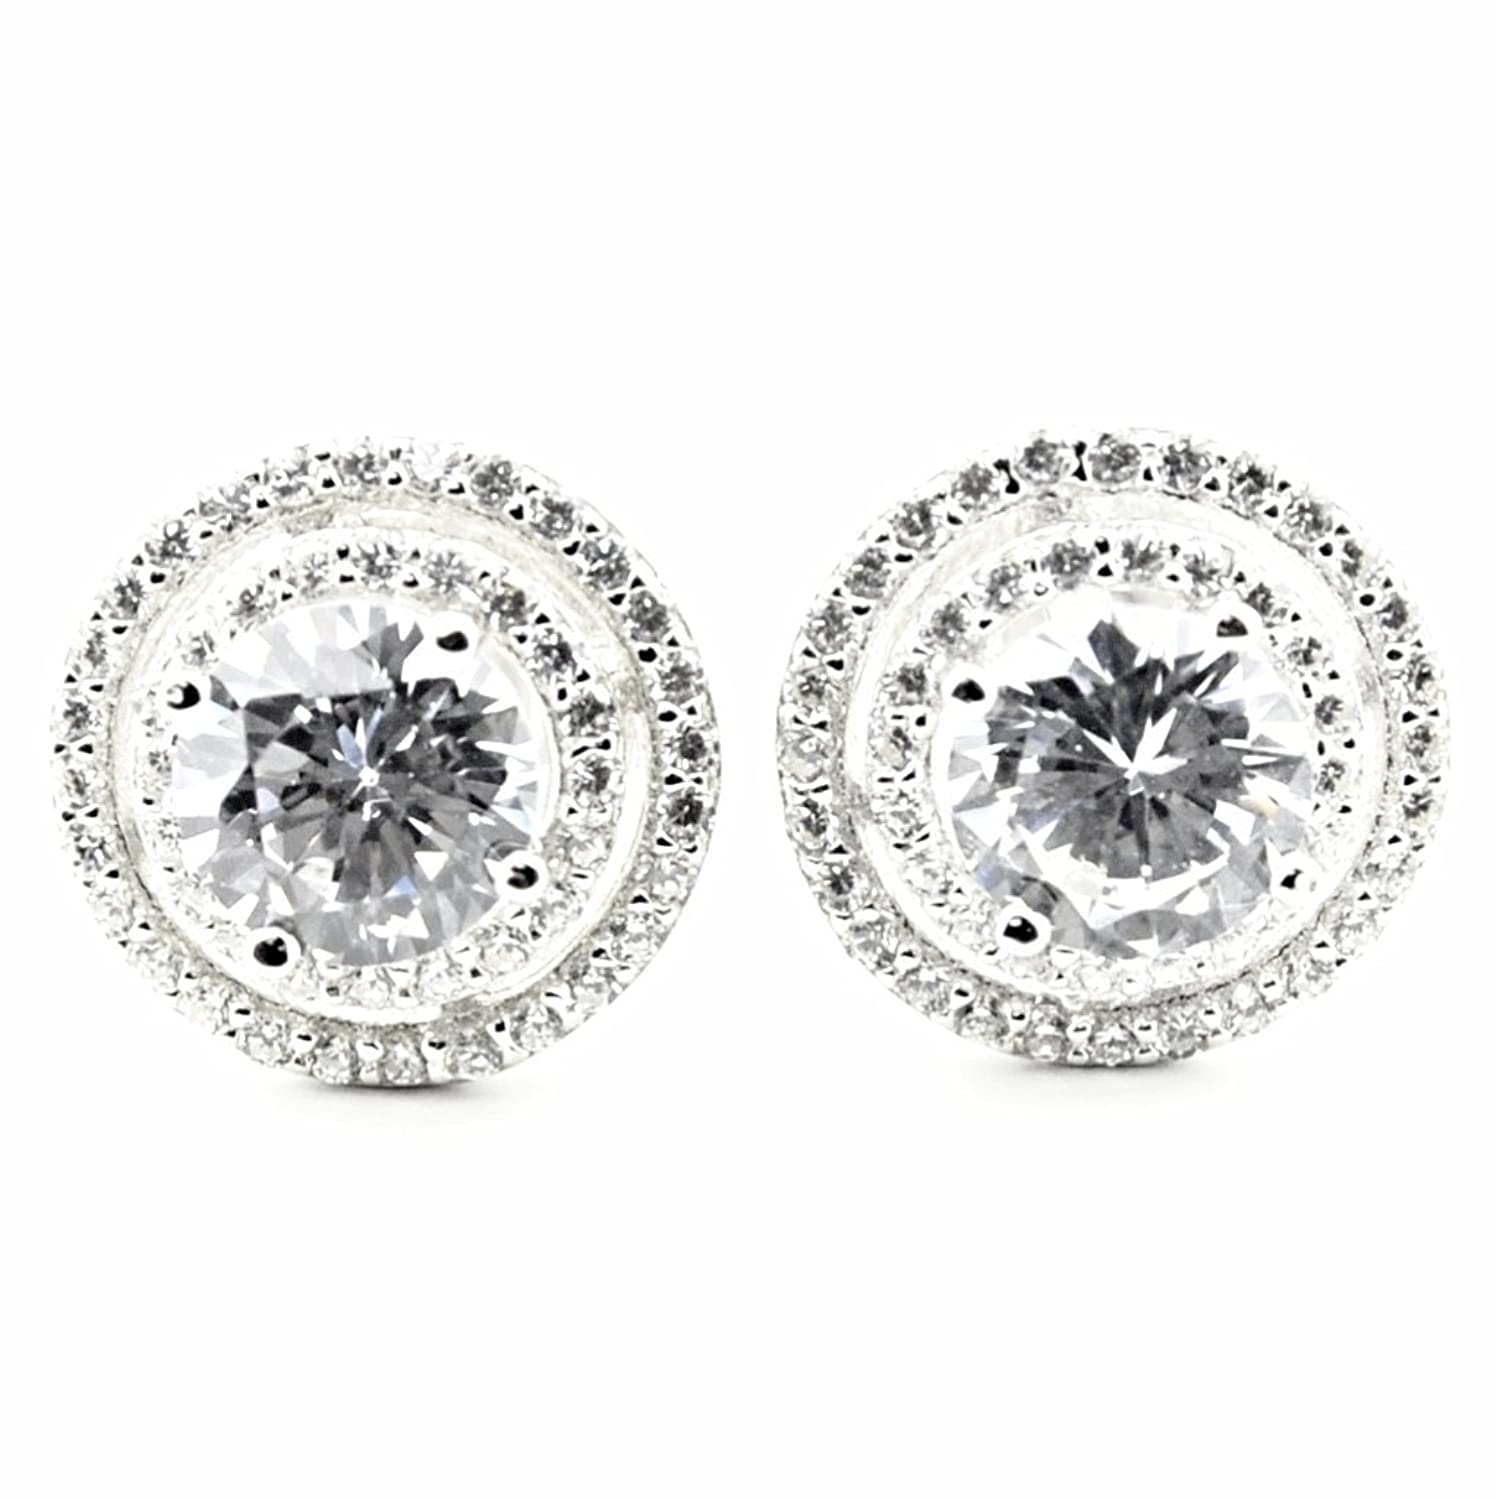 Womens Stud Earrings Large Round Halo CZ Screw Back 11.5MM Sterling Silver